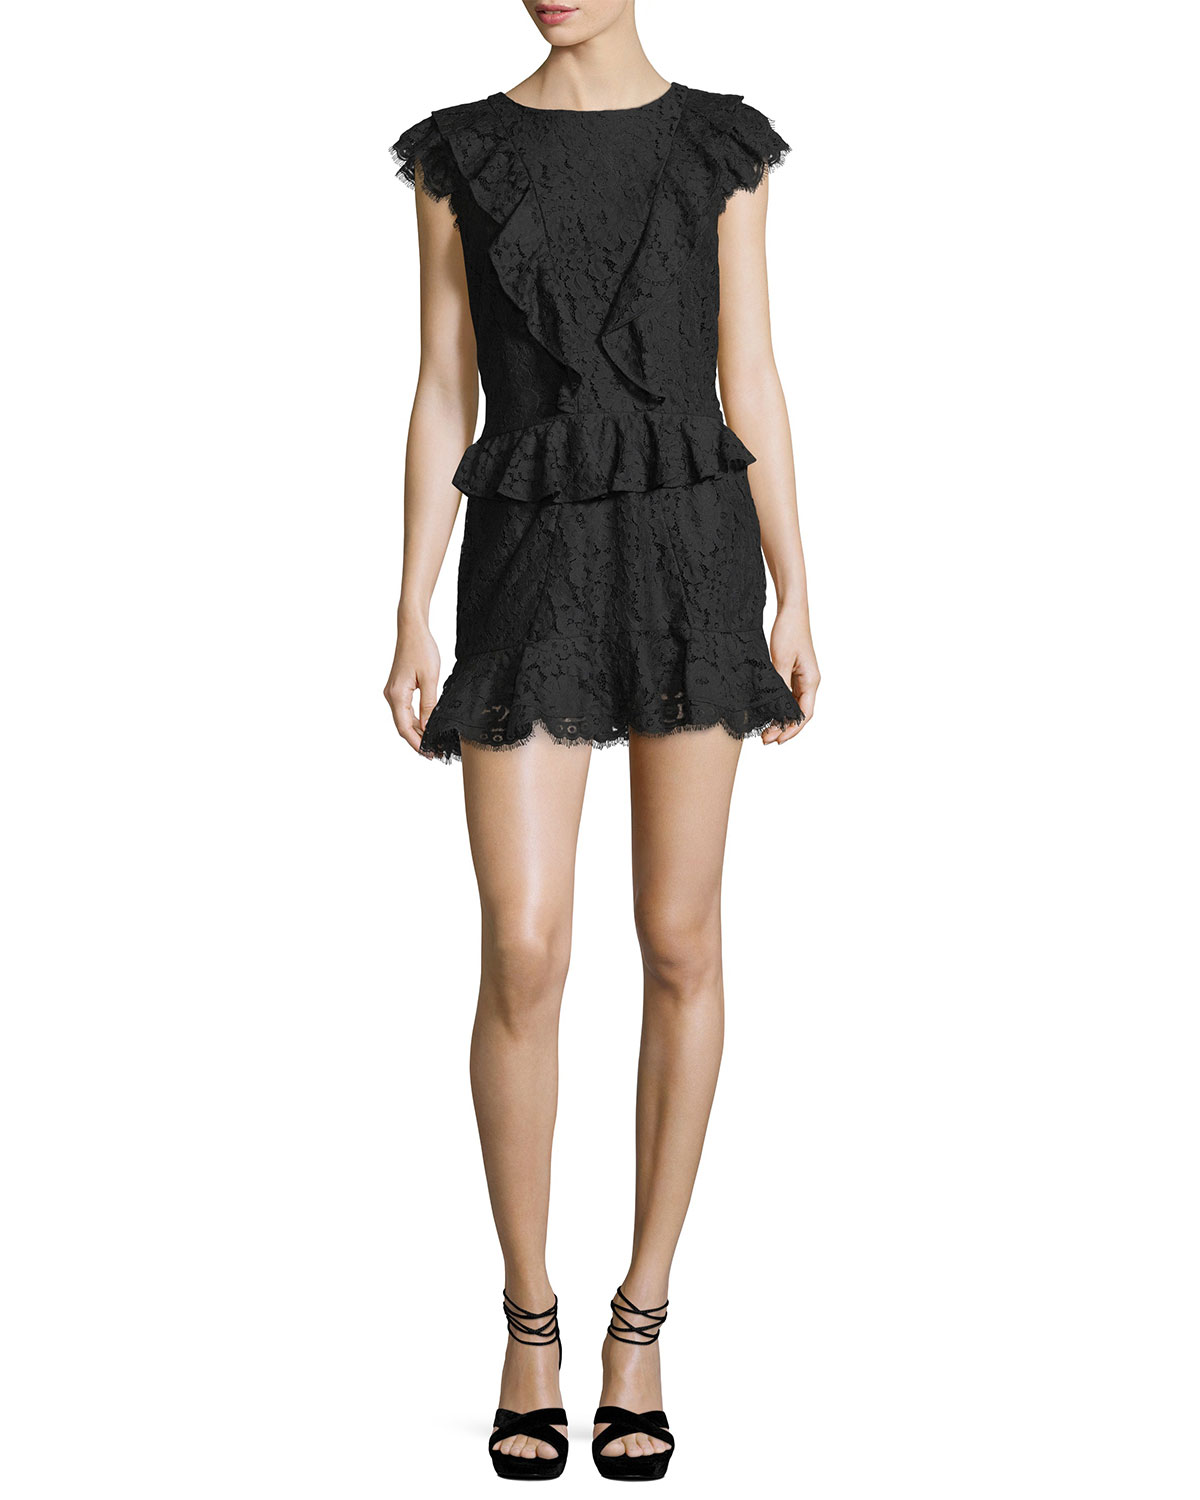 Acostas Ruffled Lace Mini Dress